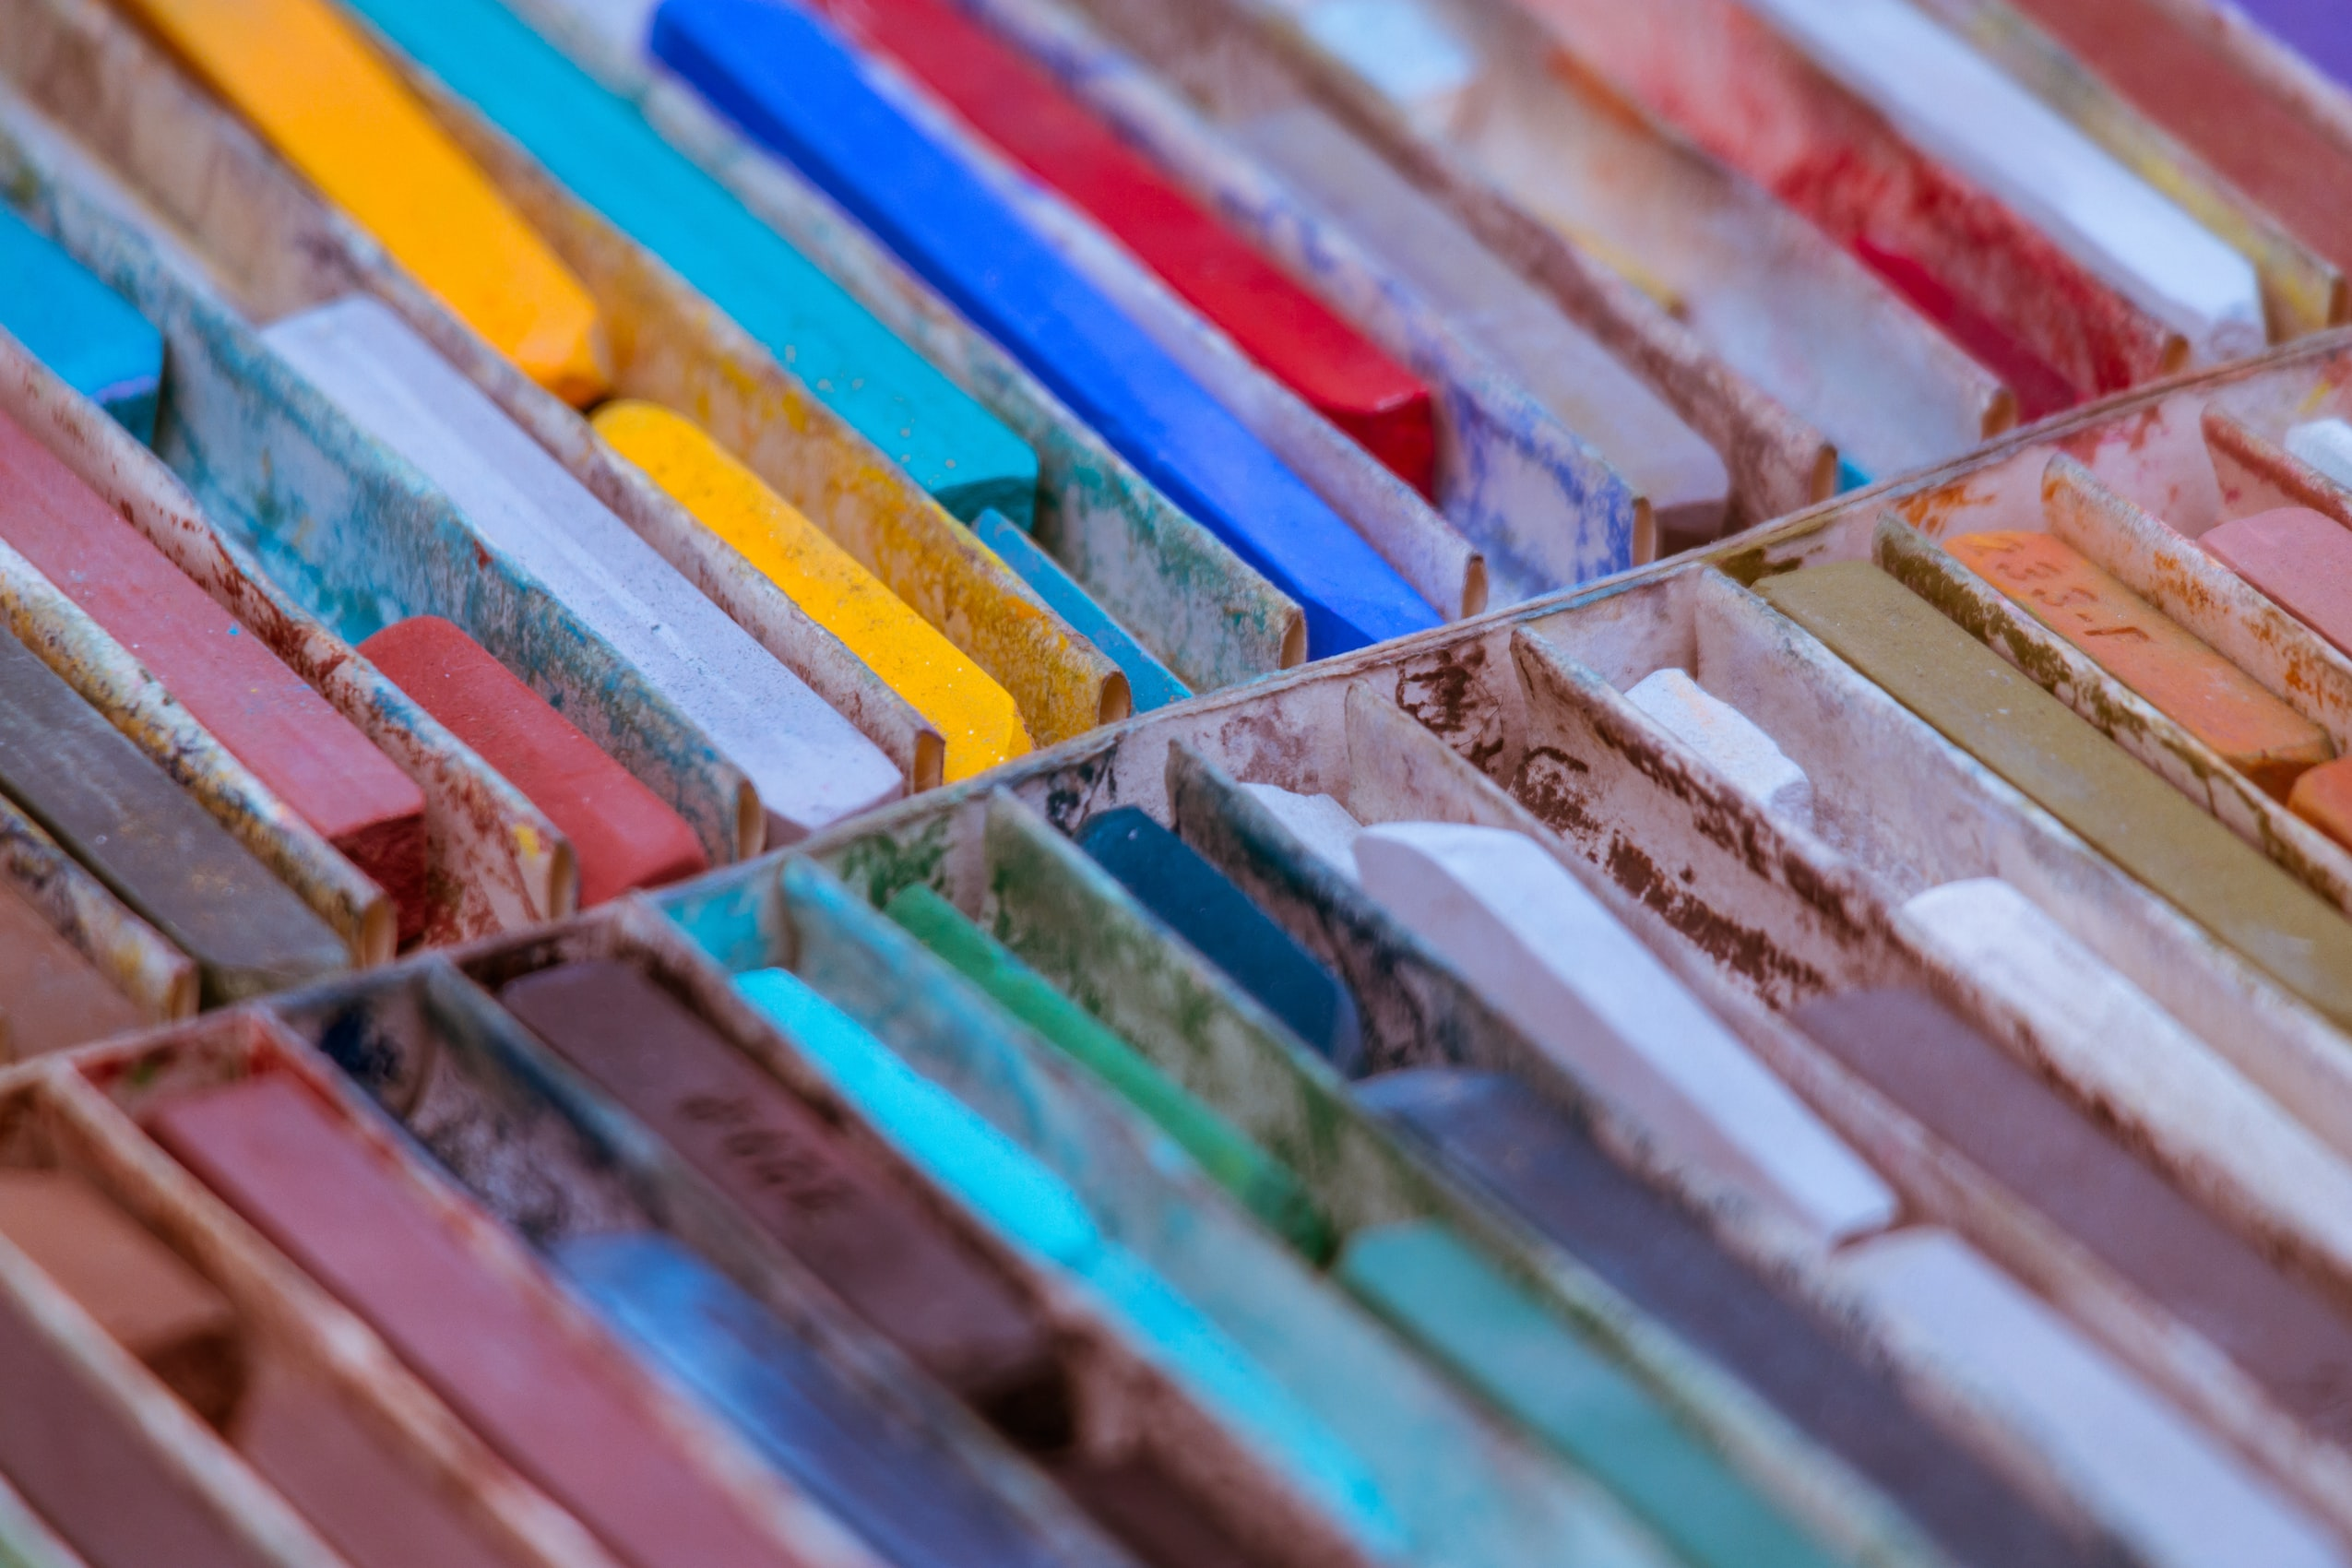 Colorful selection of well used artist chalk pastels